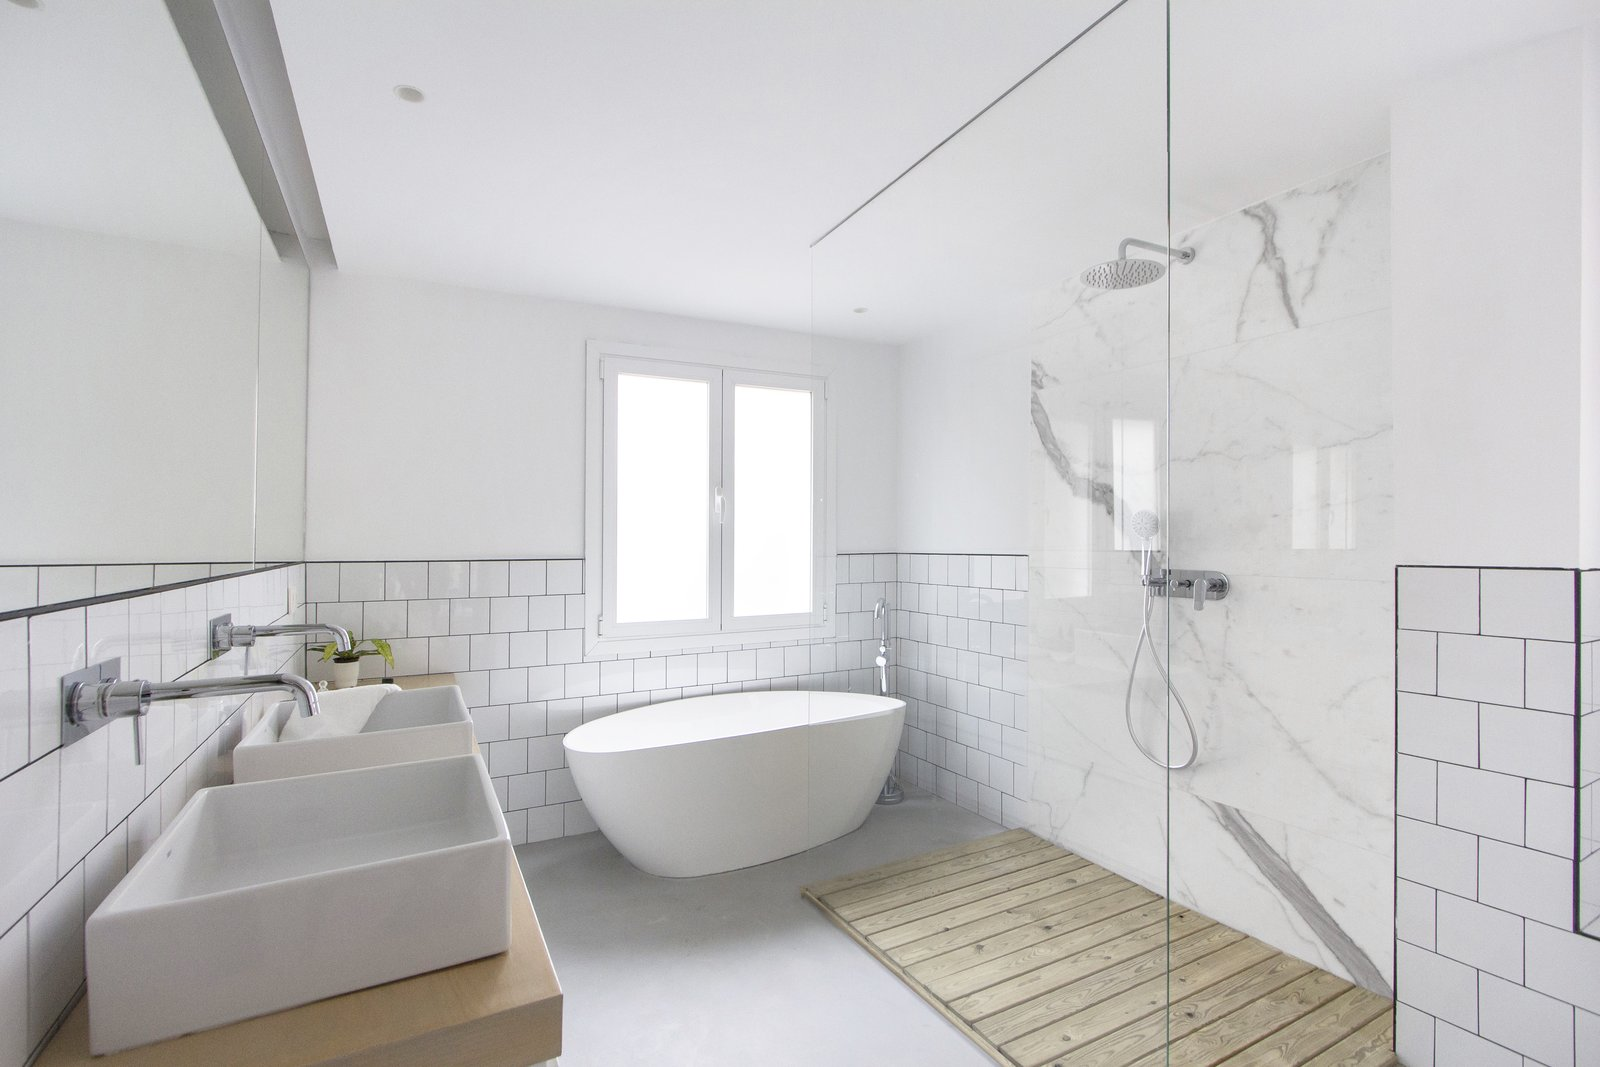 Bath, Freestanding, Open, Marble, Wood, Ceramic Tile, Two Piece, Concrete, Vessel, Ceiling, and Concrete 014.CASA PEX  Best Bath Freestanding Vessel Marble Concrete Ceramic Tile Photos from 014.PEX 114